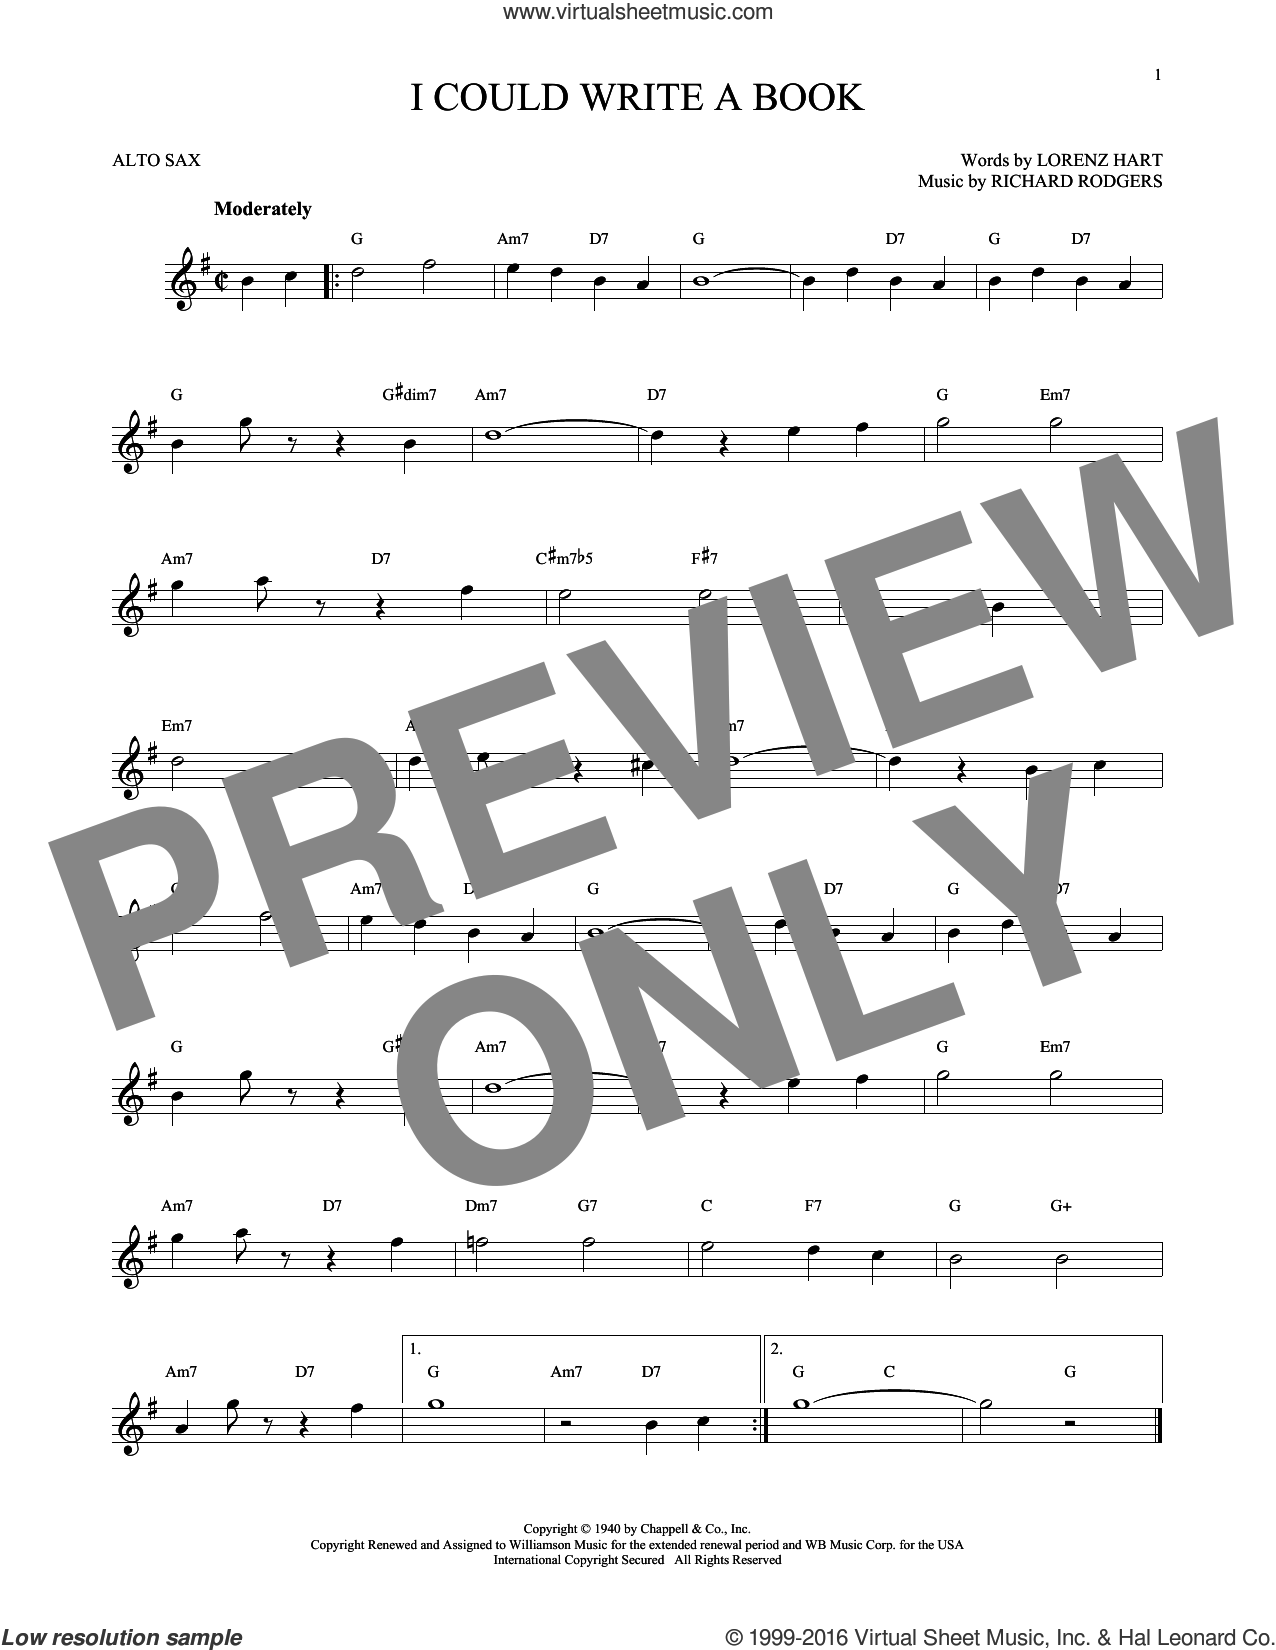 I Could Write A Book sheet music for alto saxophone solo by Rodgers & Hart, Jerry Butler, Lorenz Hart and Richard Rodgers, intermediate skill level